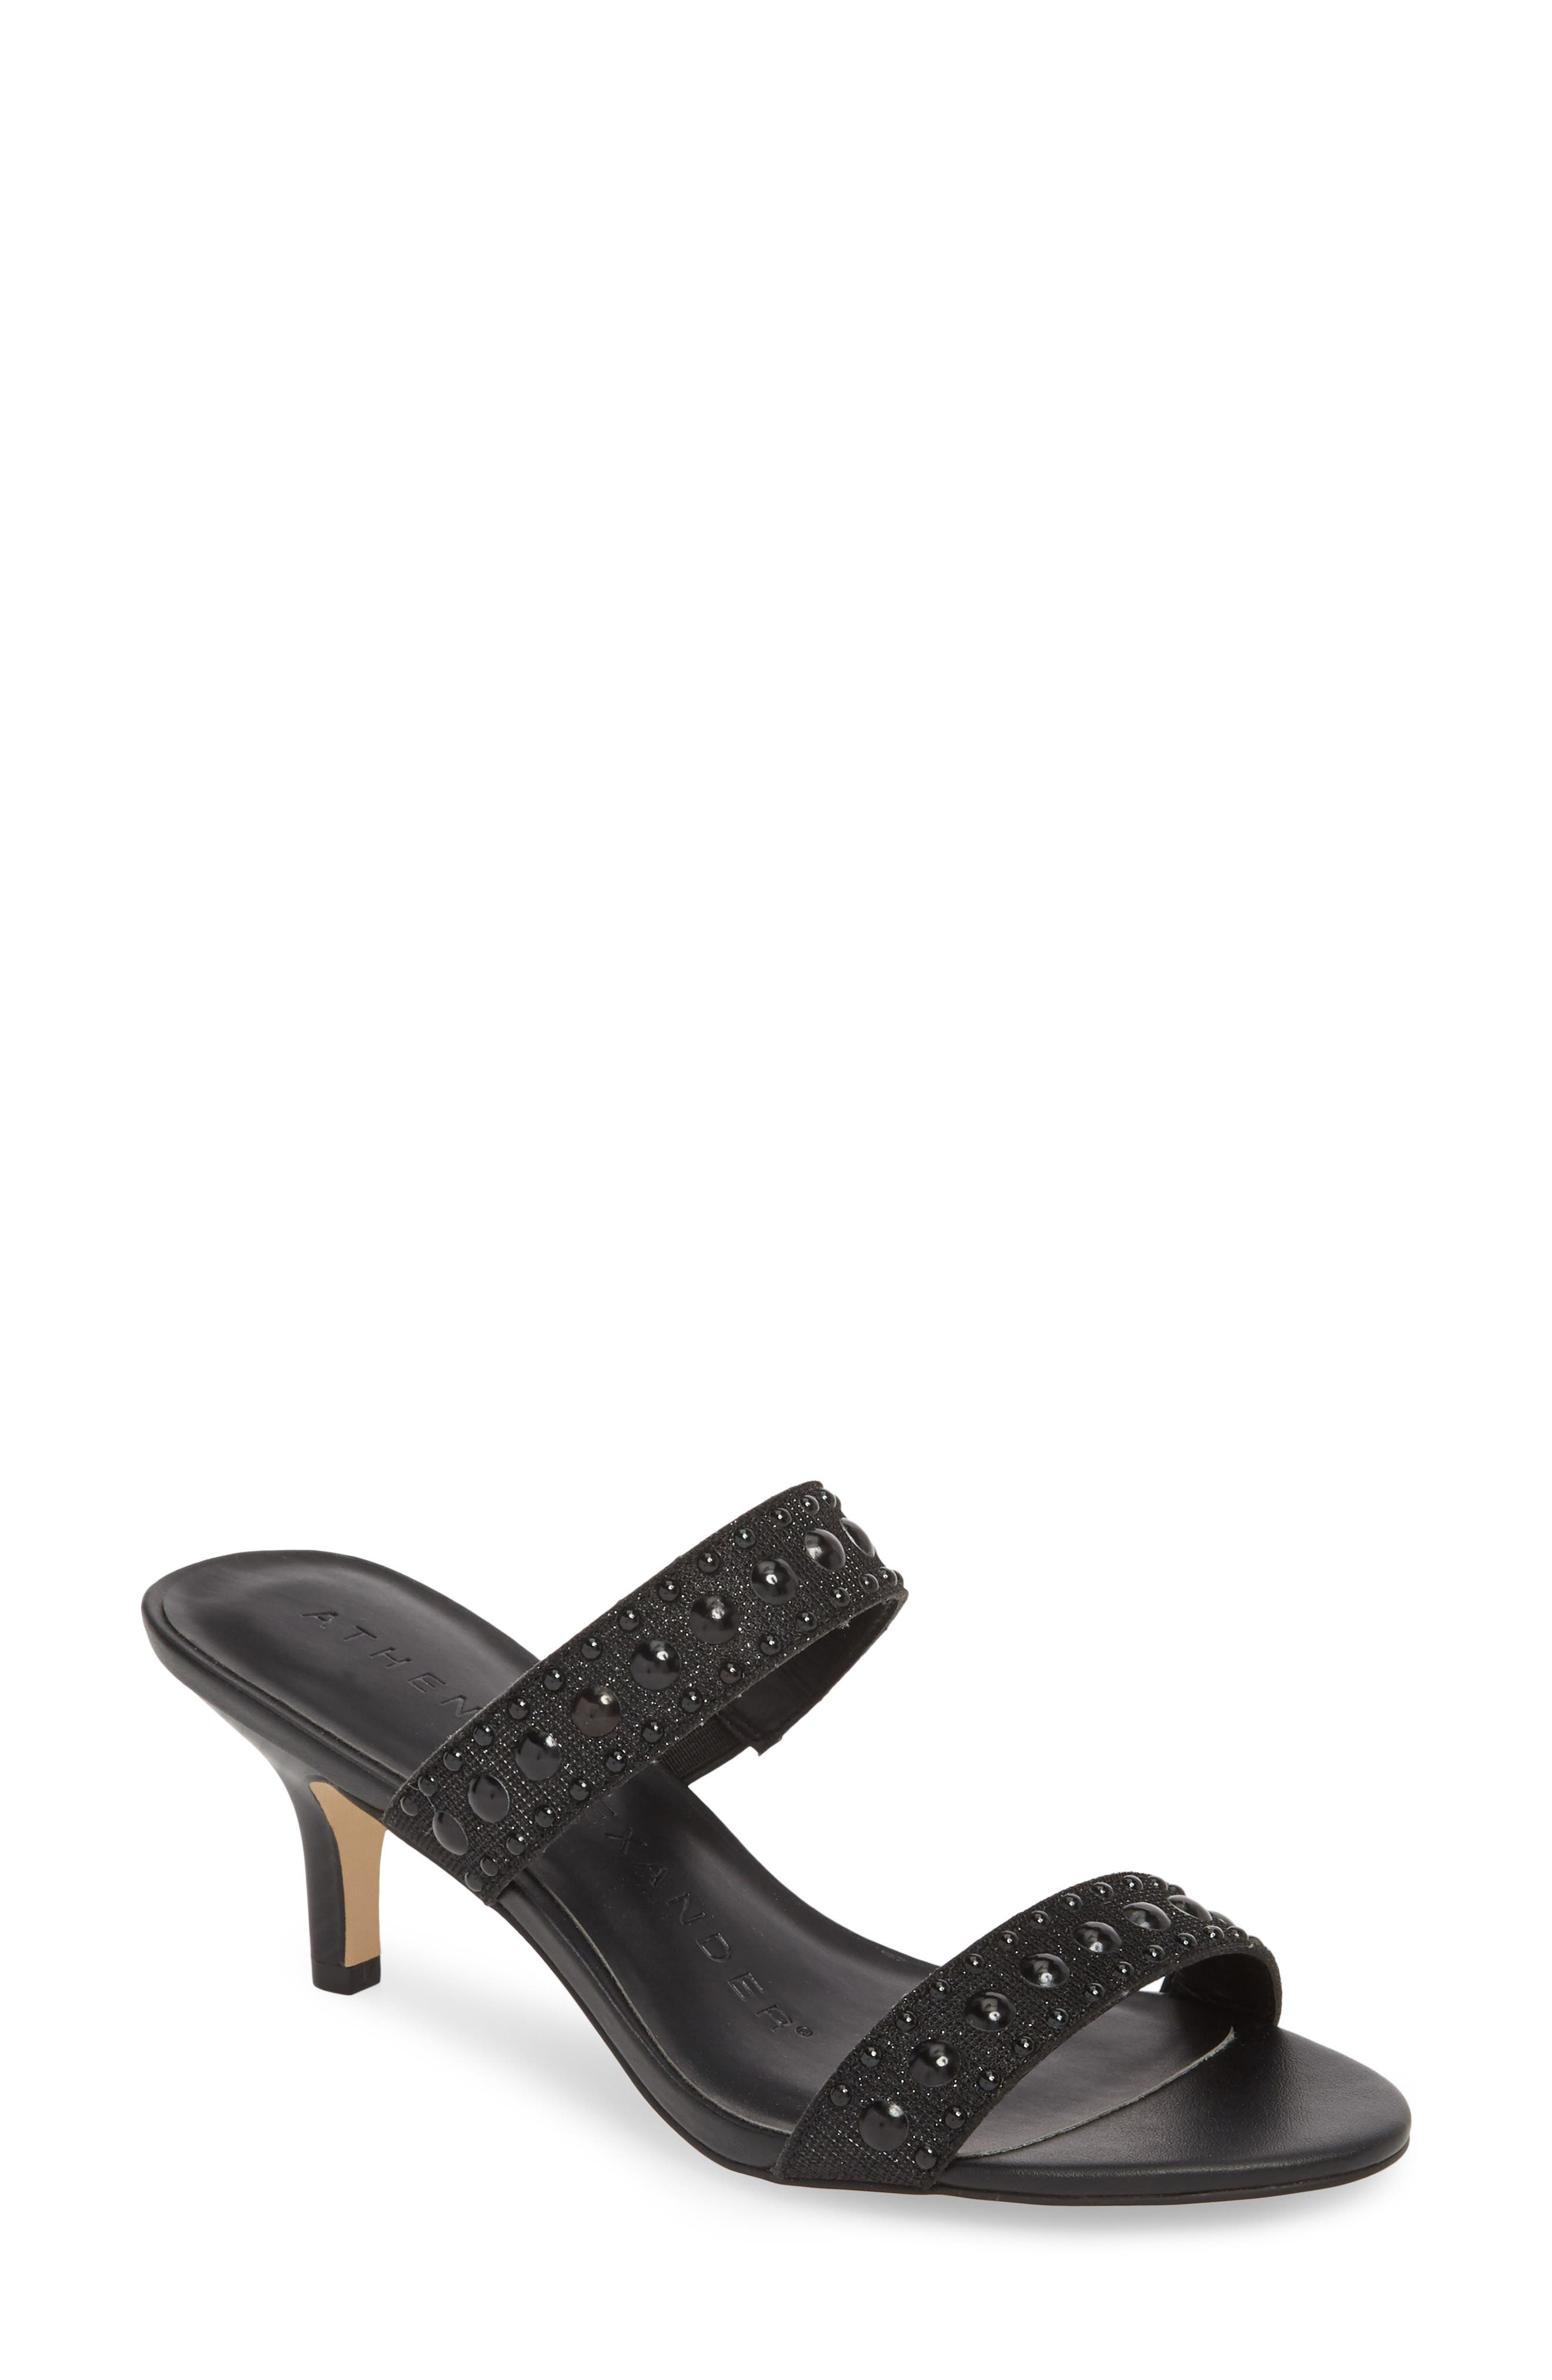 ATHENA ALEXANDER Jettie Studded Mule, Main, color, 001